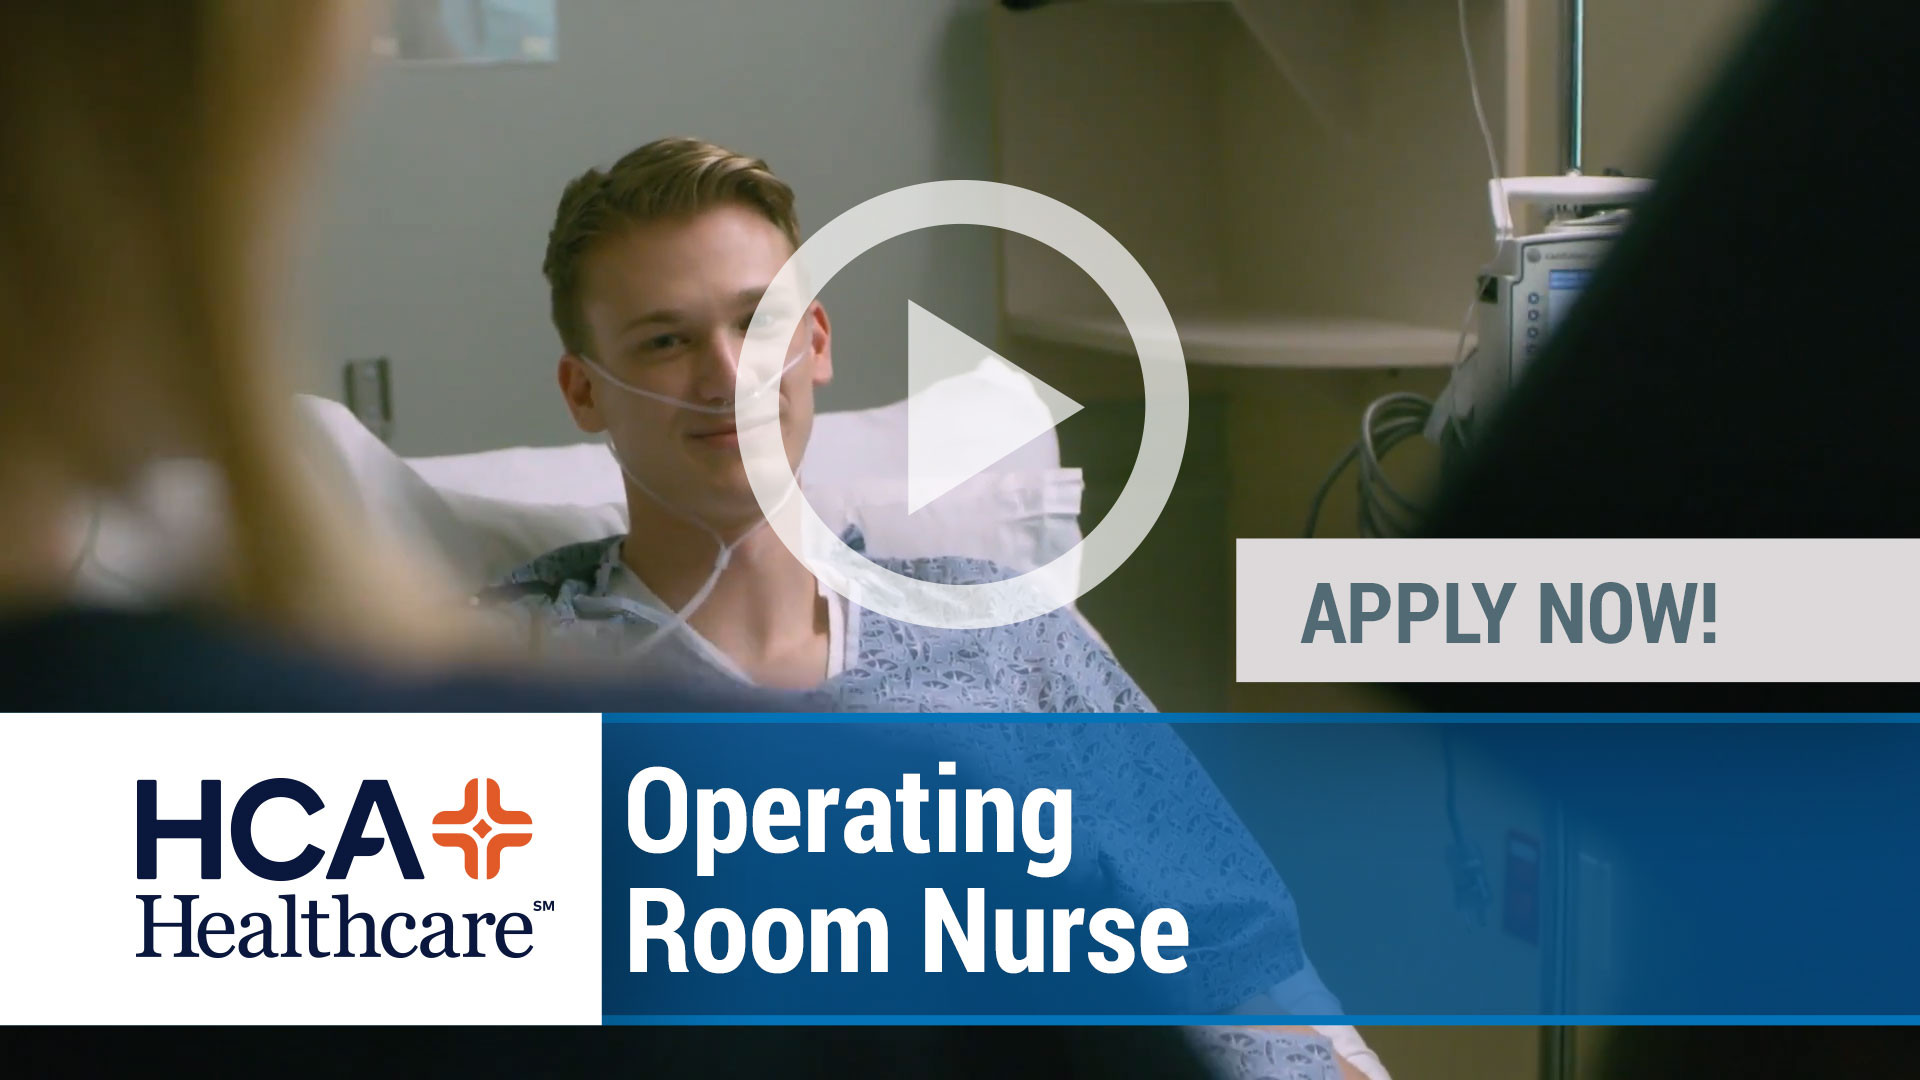 Watch our careers video for available job opening Operating Room Nurse in Anchorage, Alaska